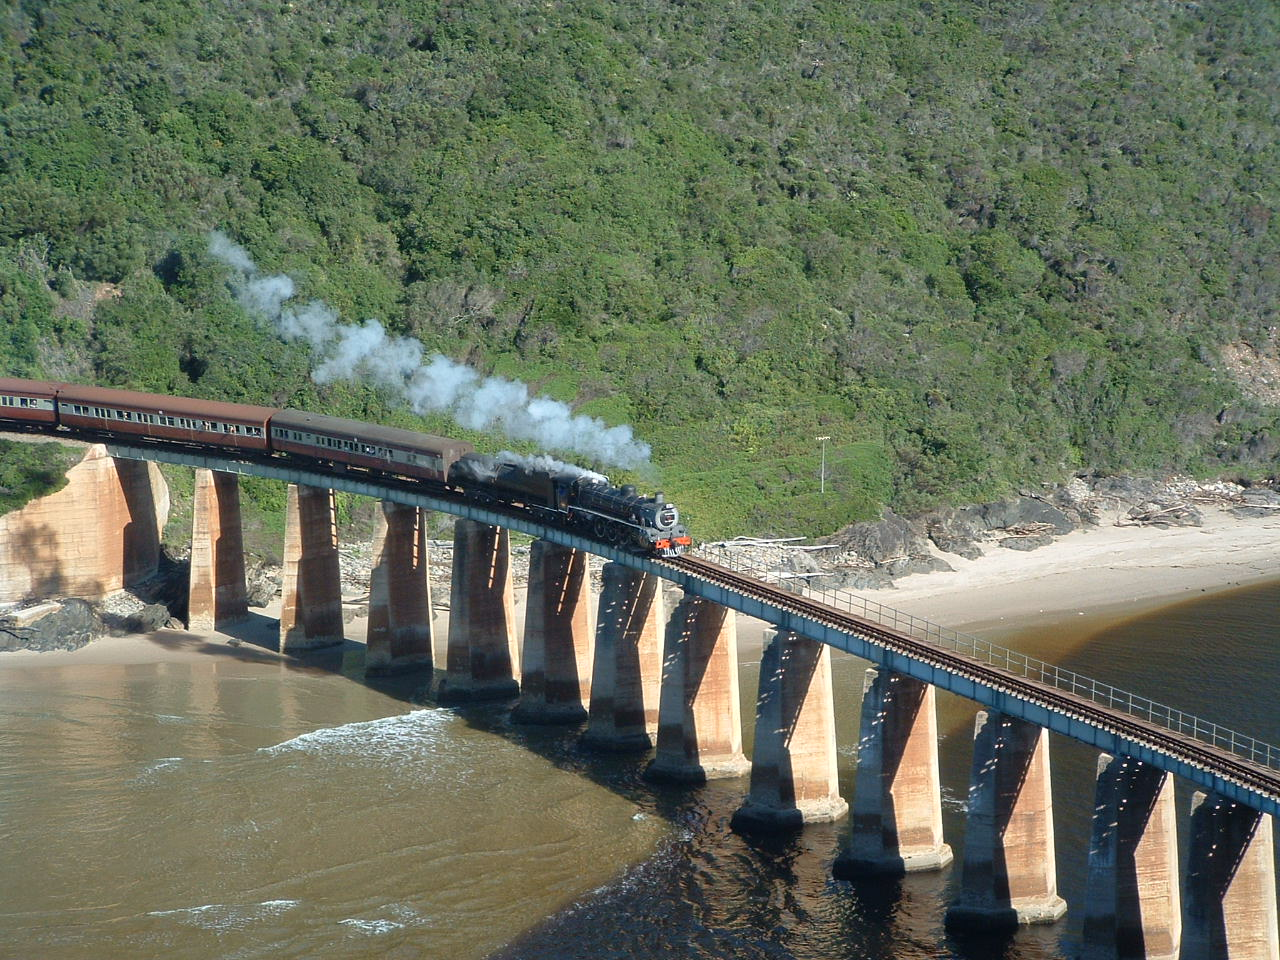 Rovos Rail Pretoria to Durban